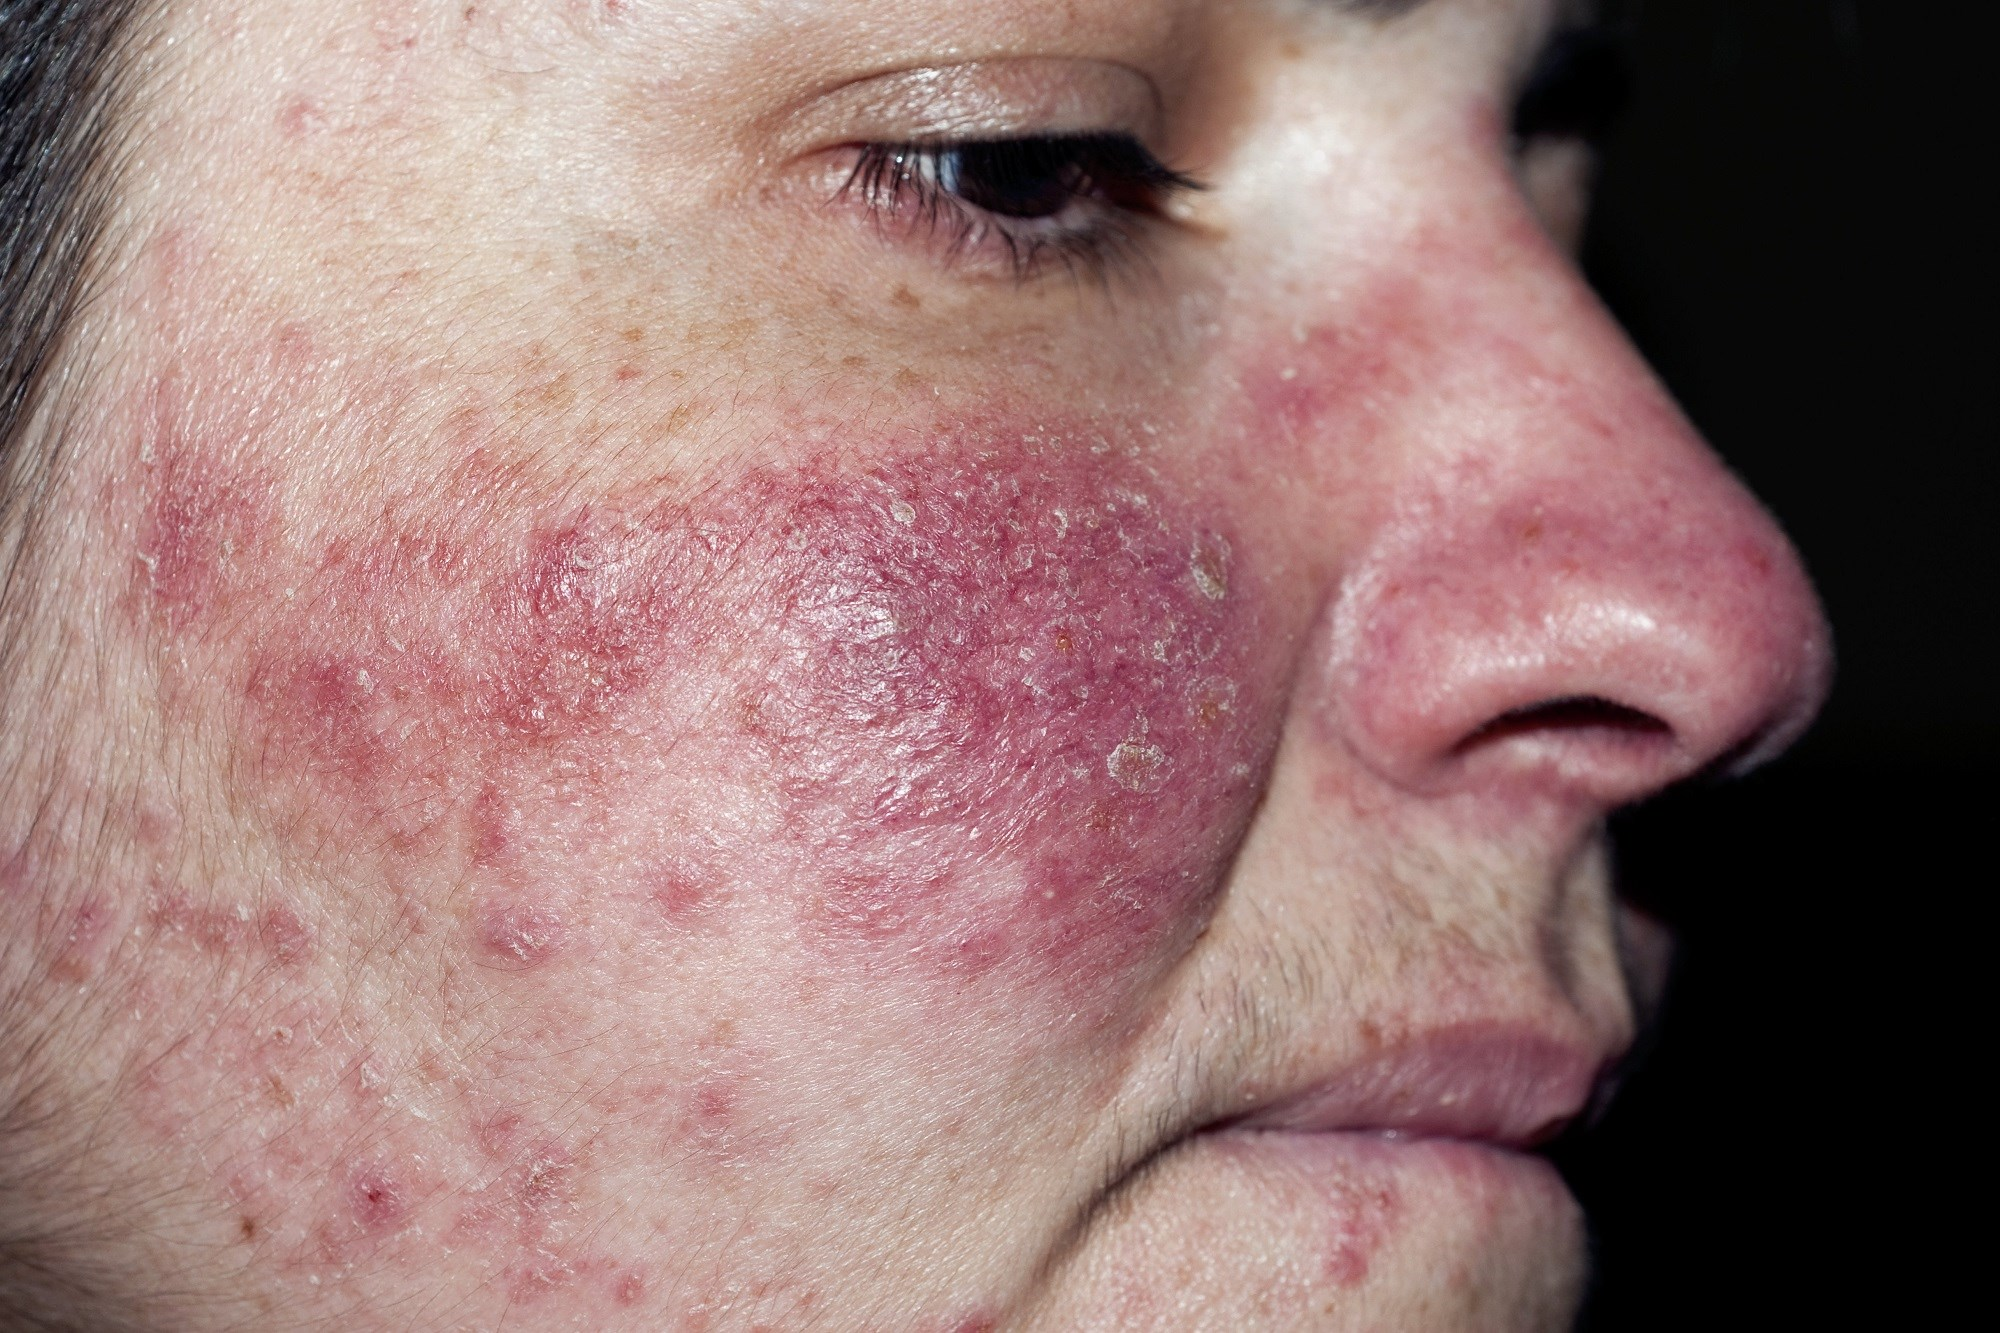 Patch Testing Beneficial in Rosacea to Detect Contact Sensitivity